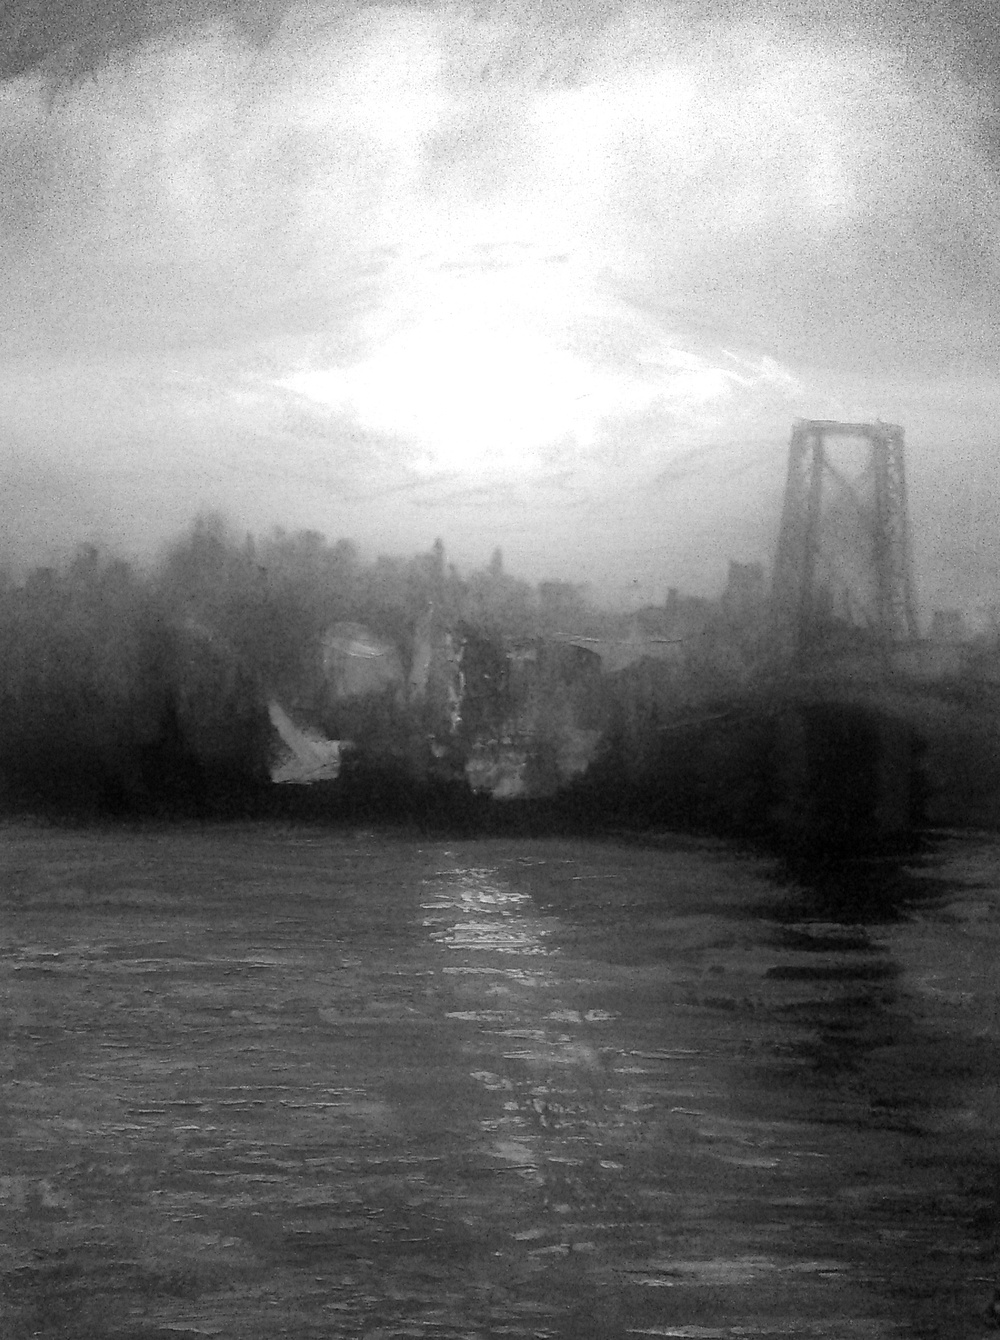 Williamsburg Bridge in B&W